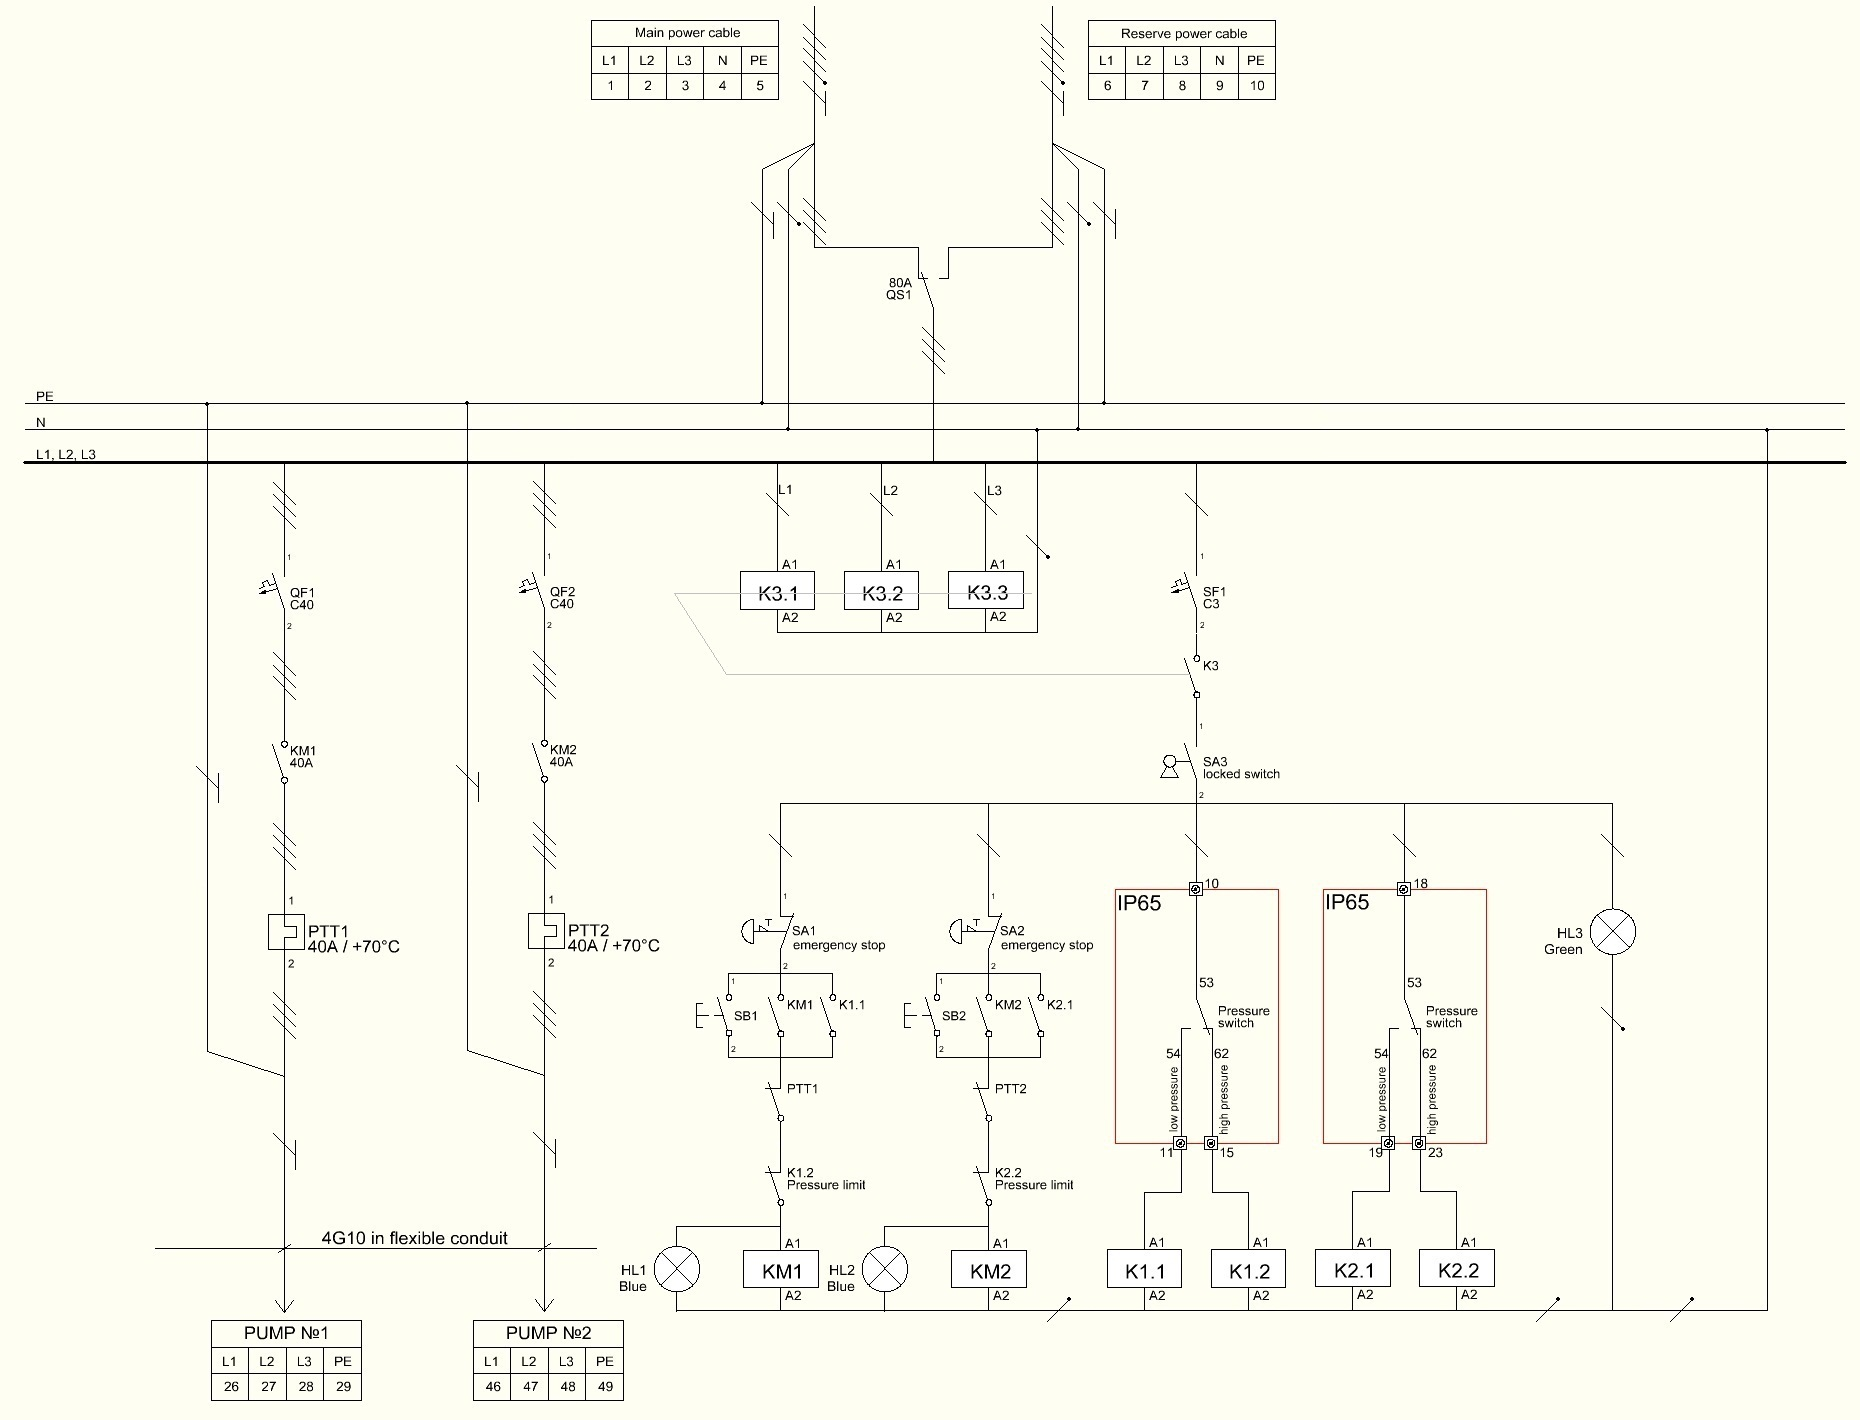 motor control center wiring diagram dvr file of centre on pump